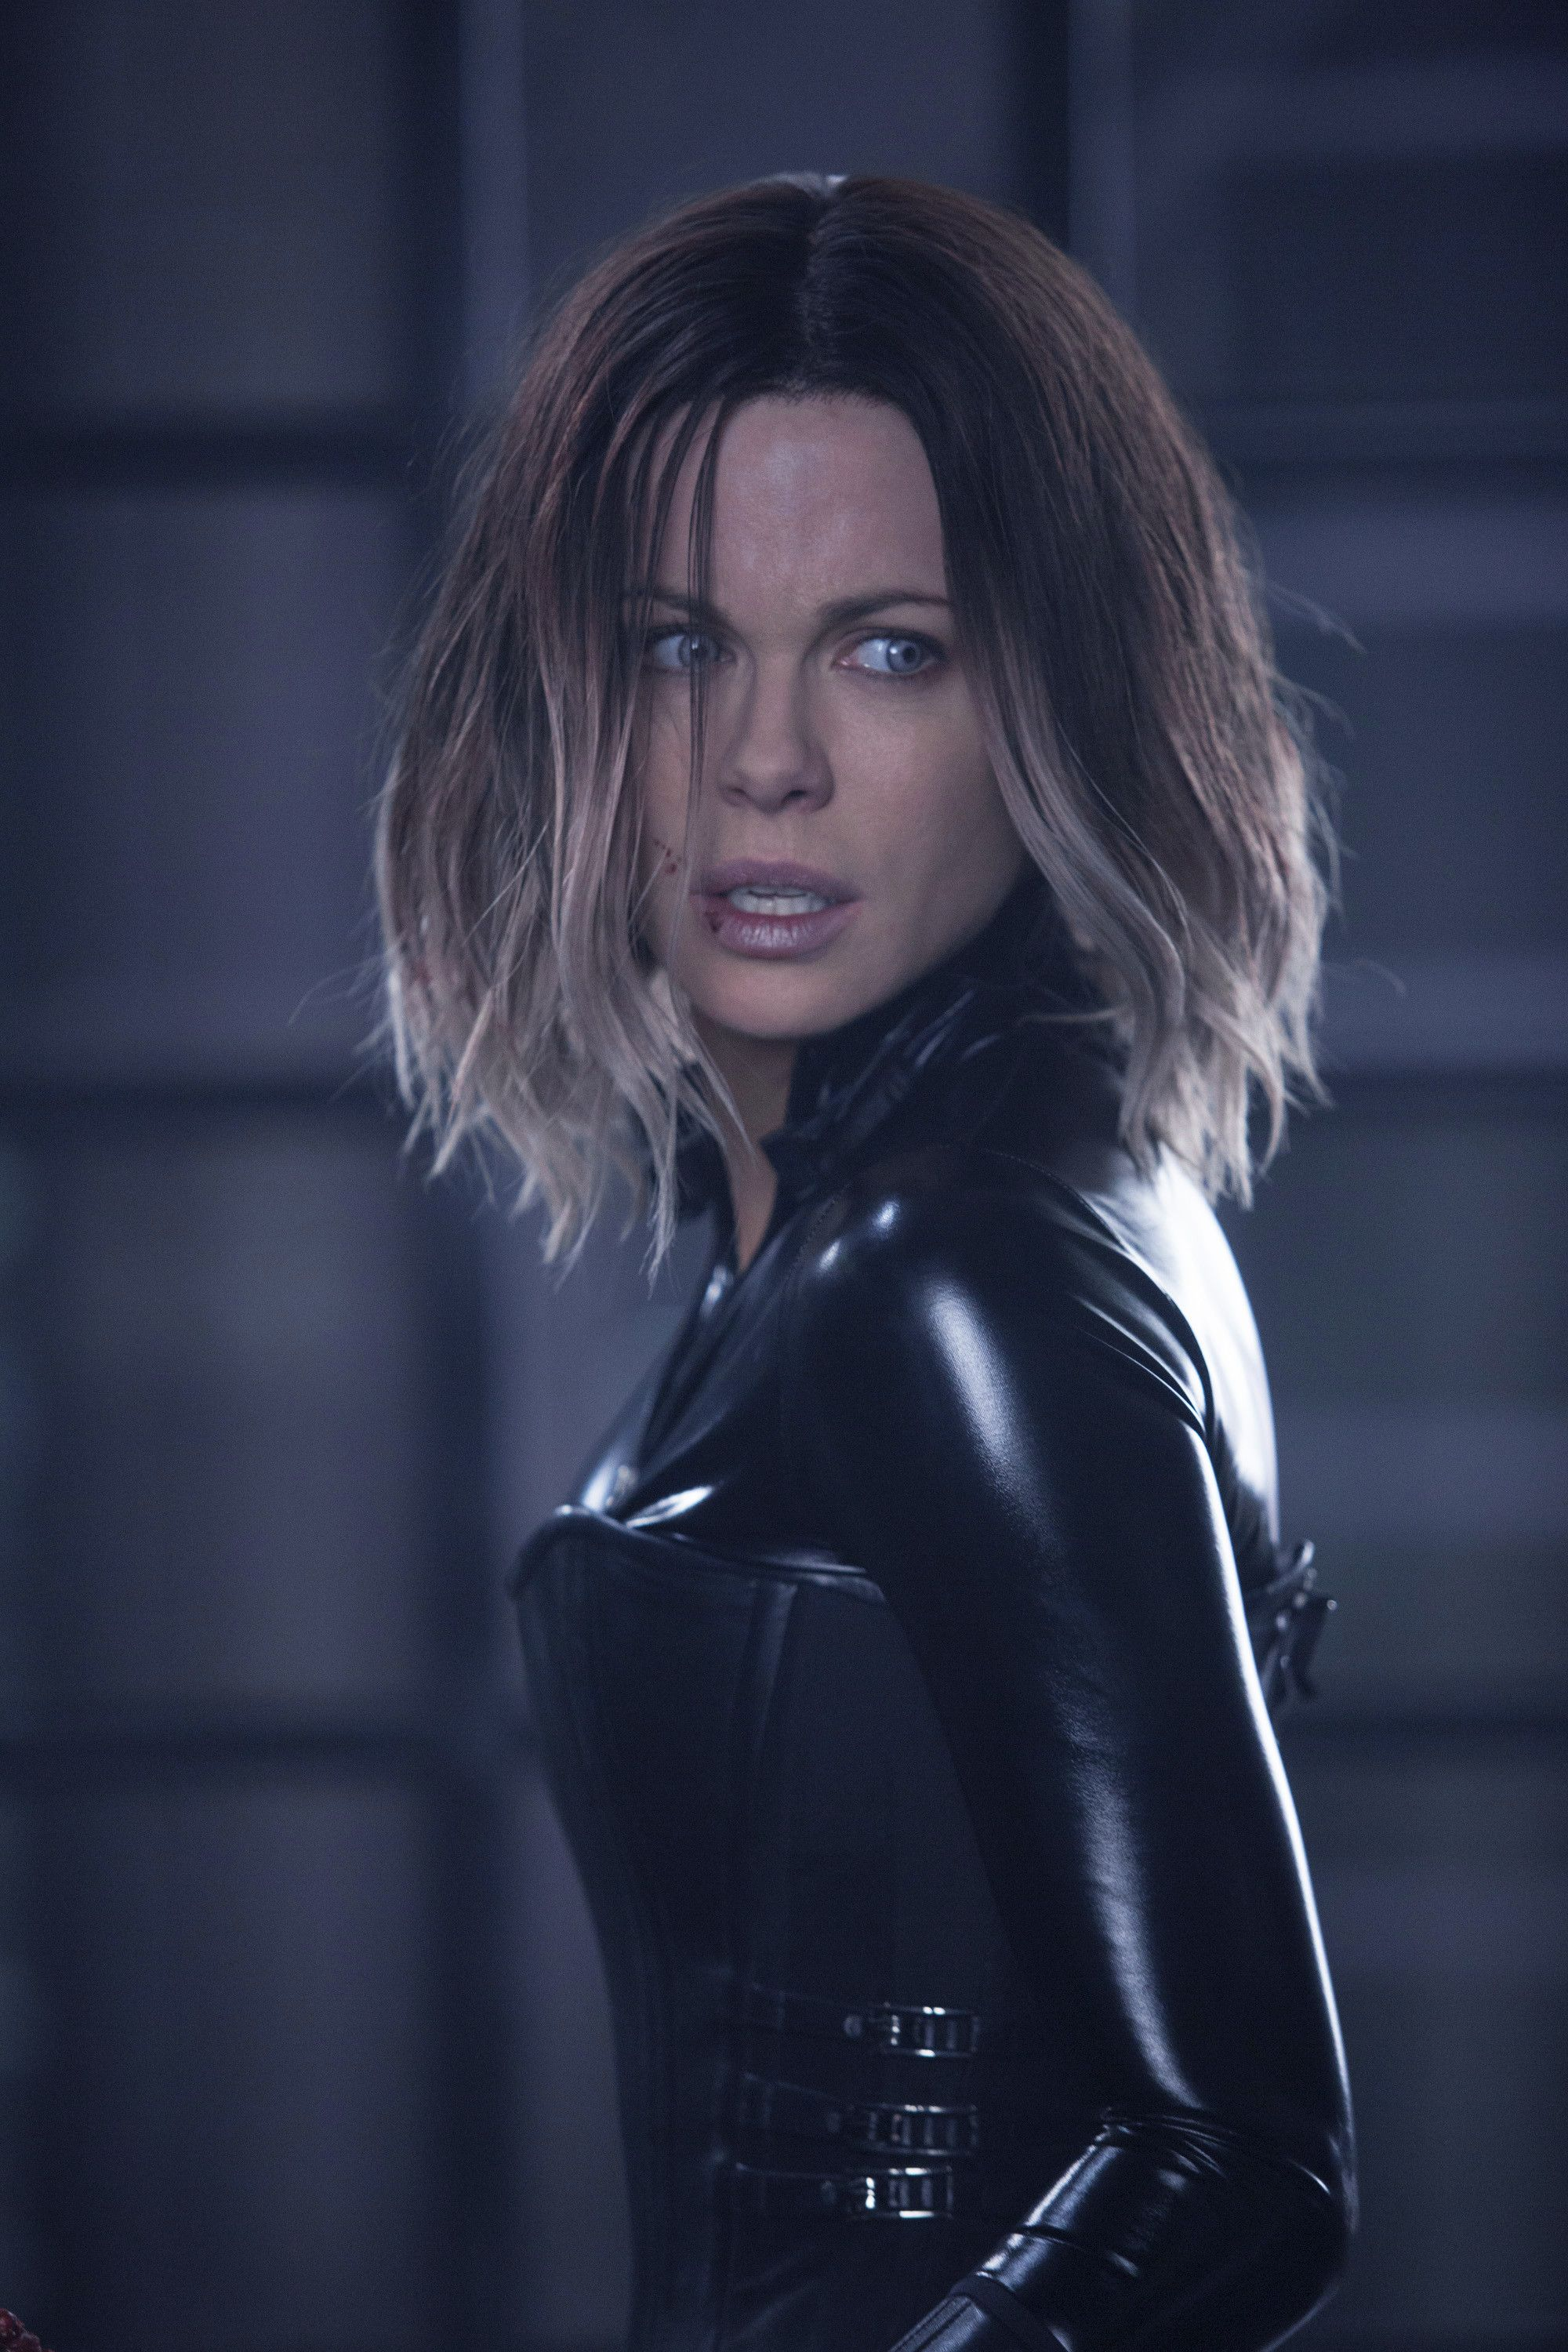 Res 2000x3000 New Vampires Images Selene Hd Wallpaper And Background Photos Kate Beckinsale Pictures Kate Beckinsale Underworld Kate Beckinsale